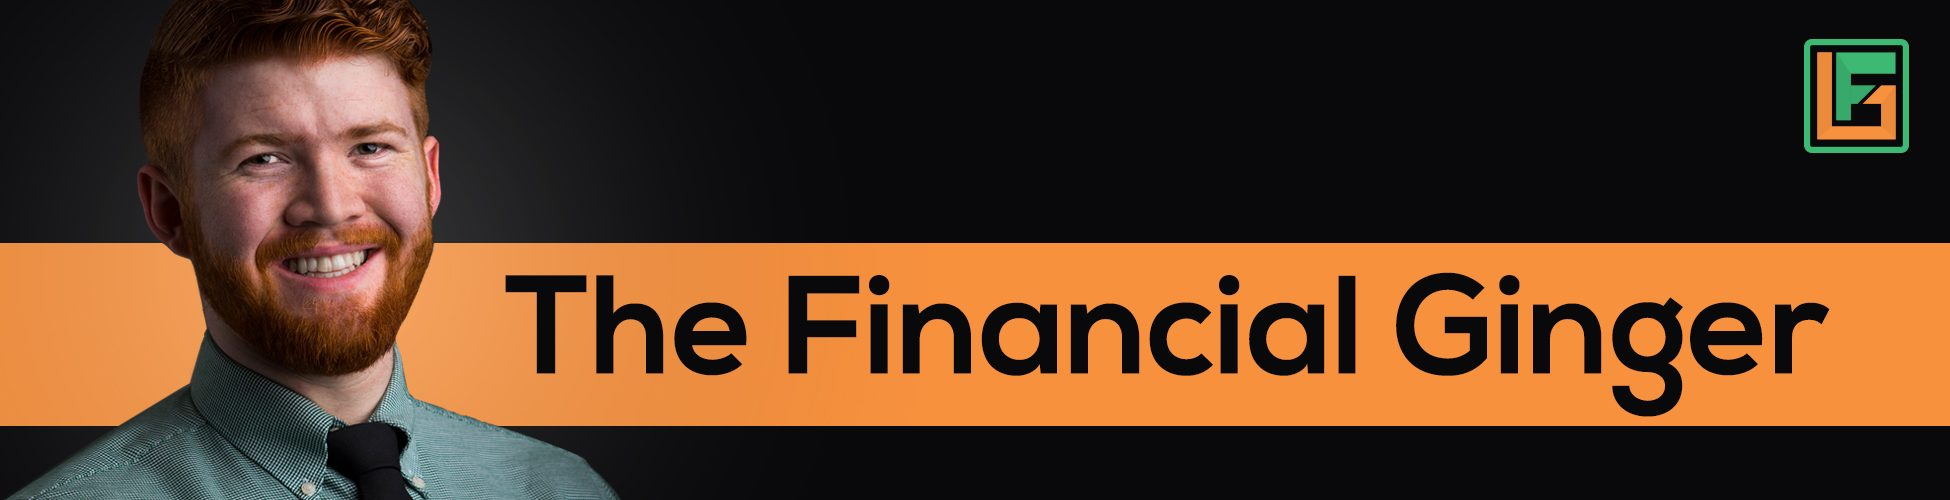 cropped-The-Financial-Ginger-Banner-Orange